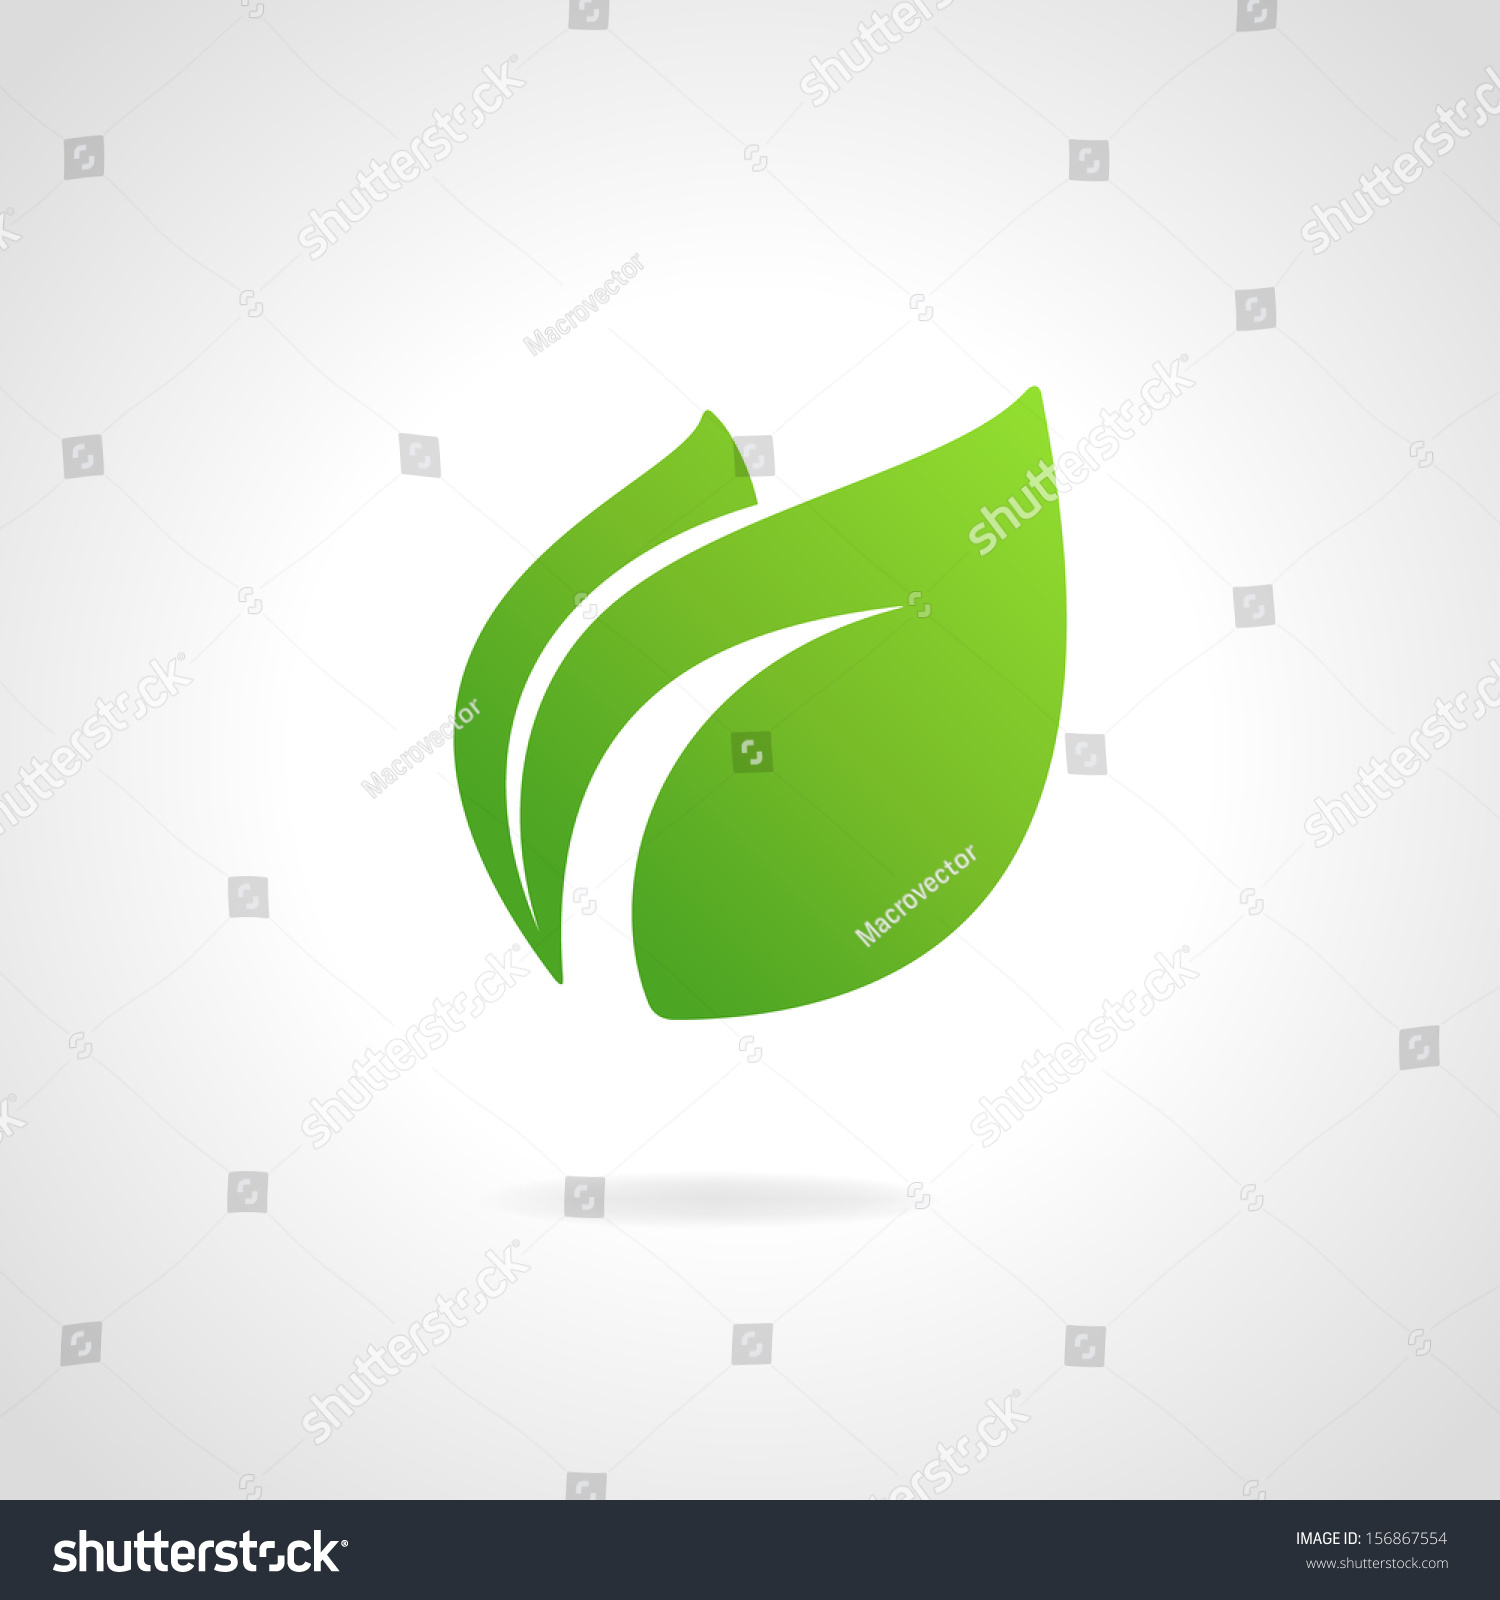 stock-vector-eco-icon-green-leaf-vector-illustration-isolated ...